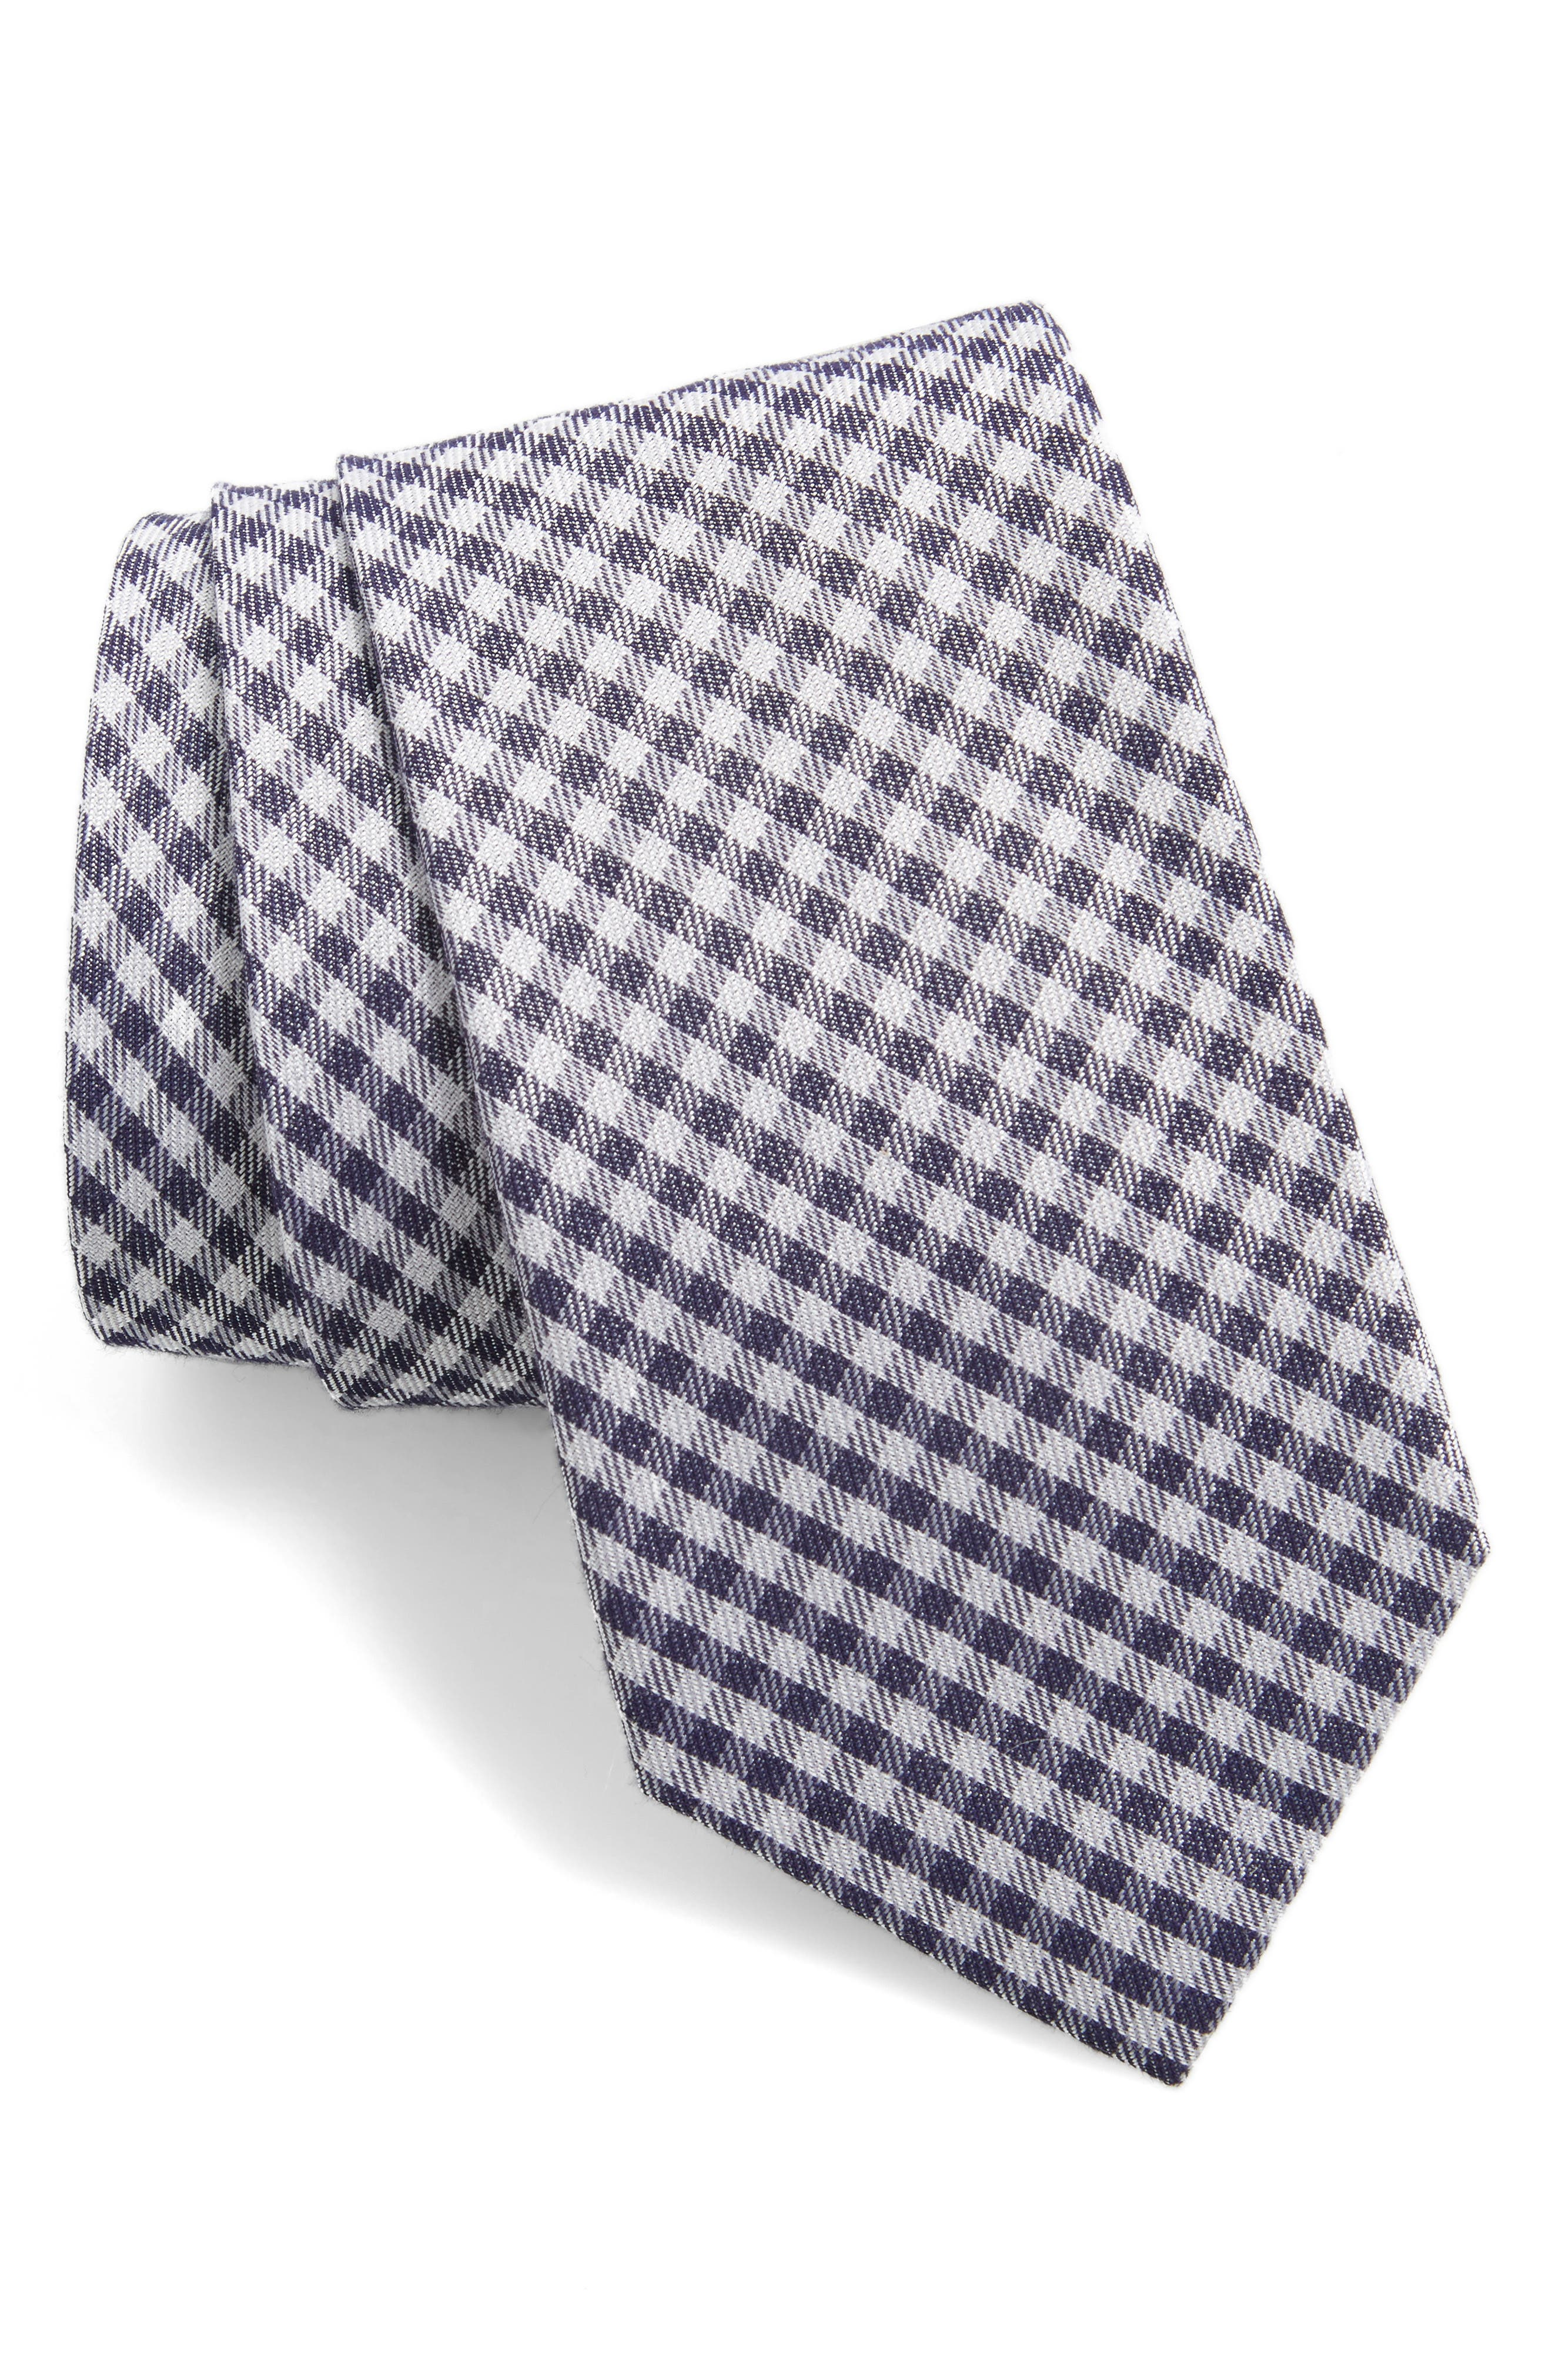 Alternate Image 1 Selected - Nordstrom Men's Shop Check Cotton & Silk Tie